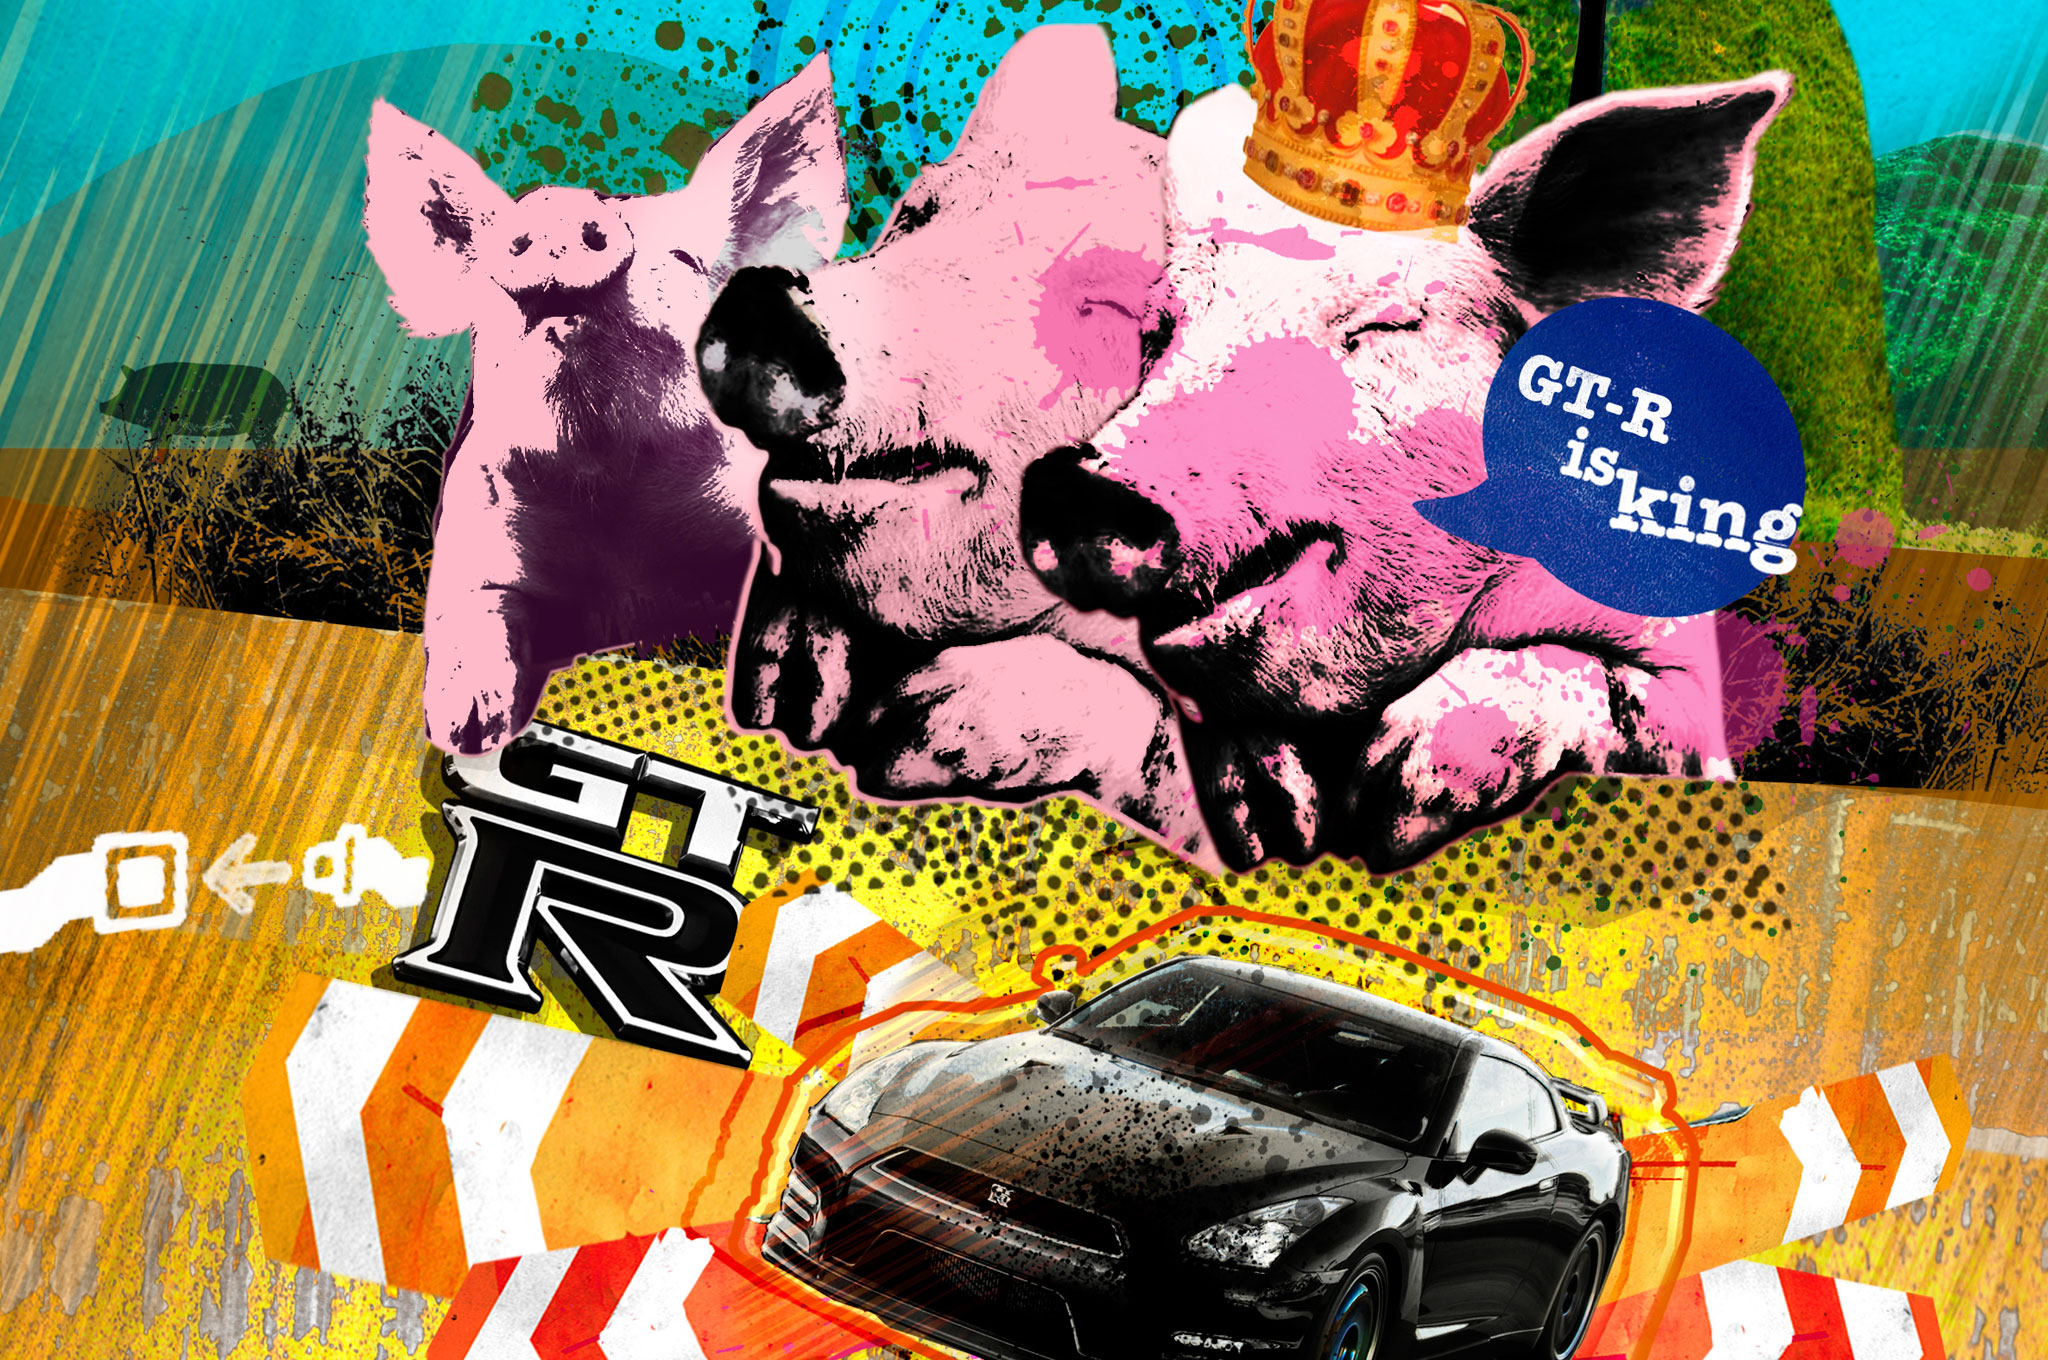 GT R Pigs Illustration Cropped